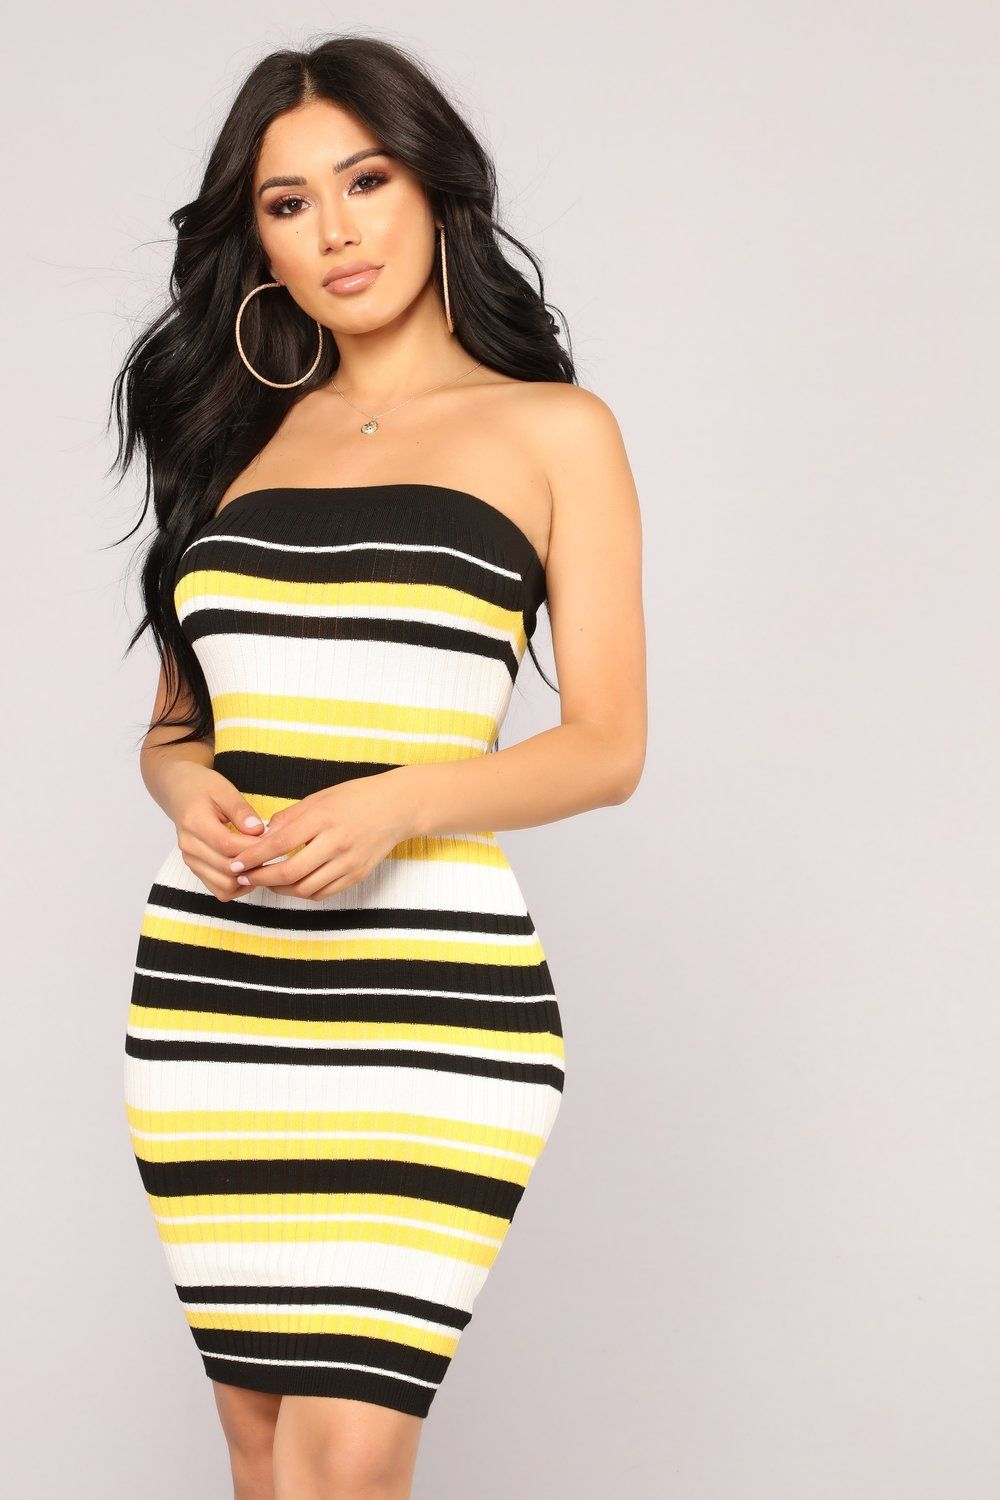 36221a83bd Honey Stripe Dress - Black Yellow